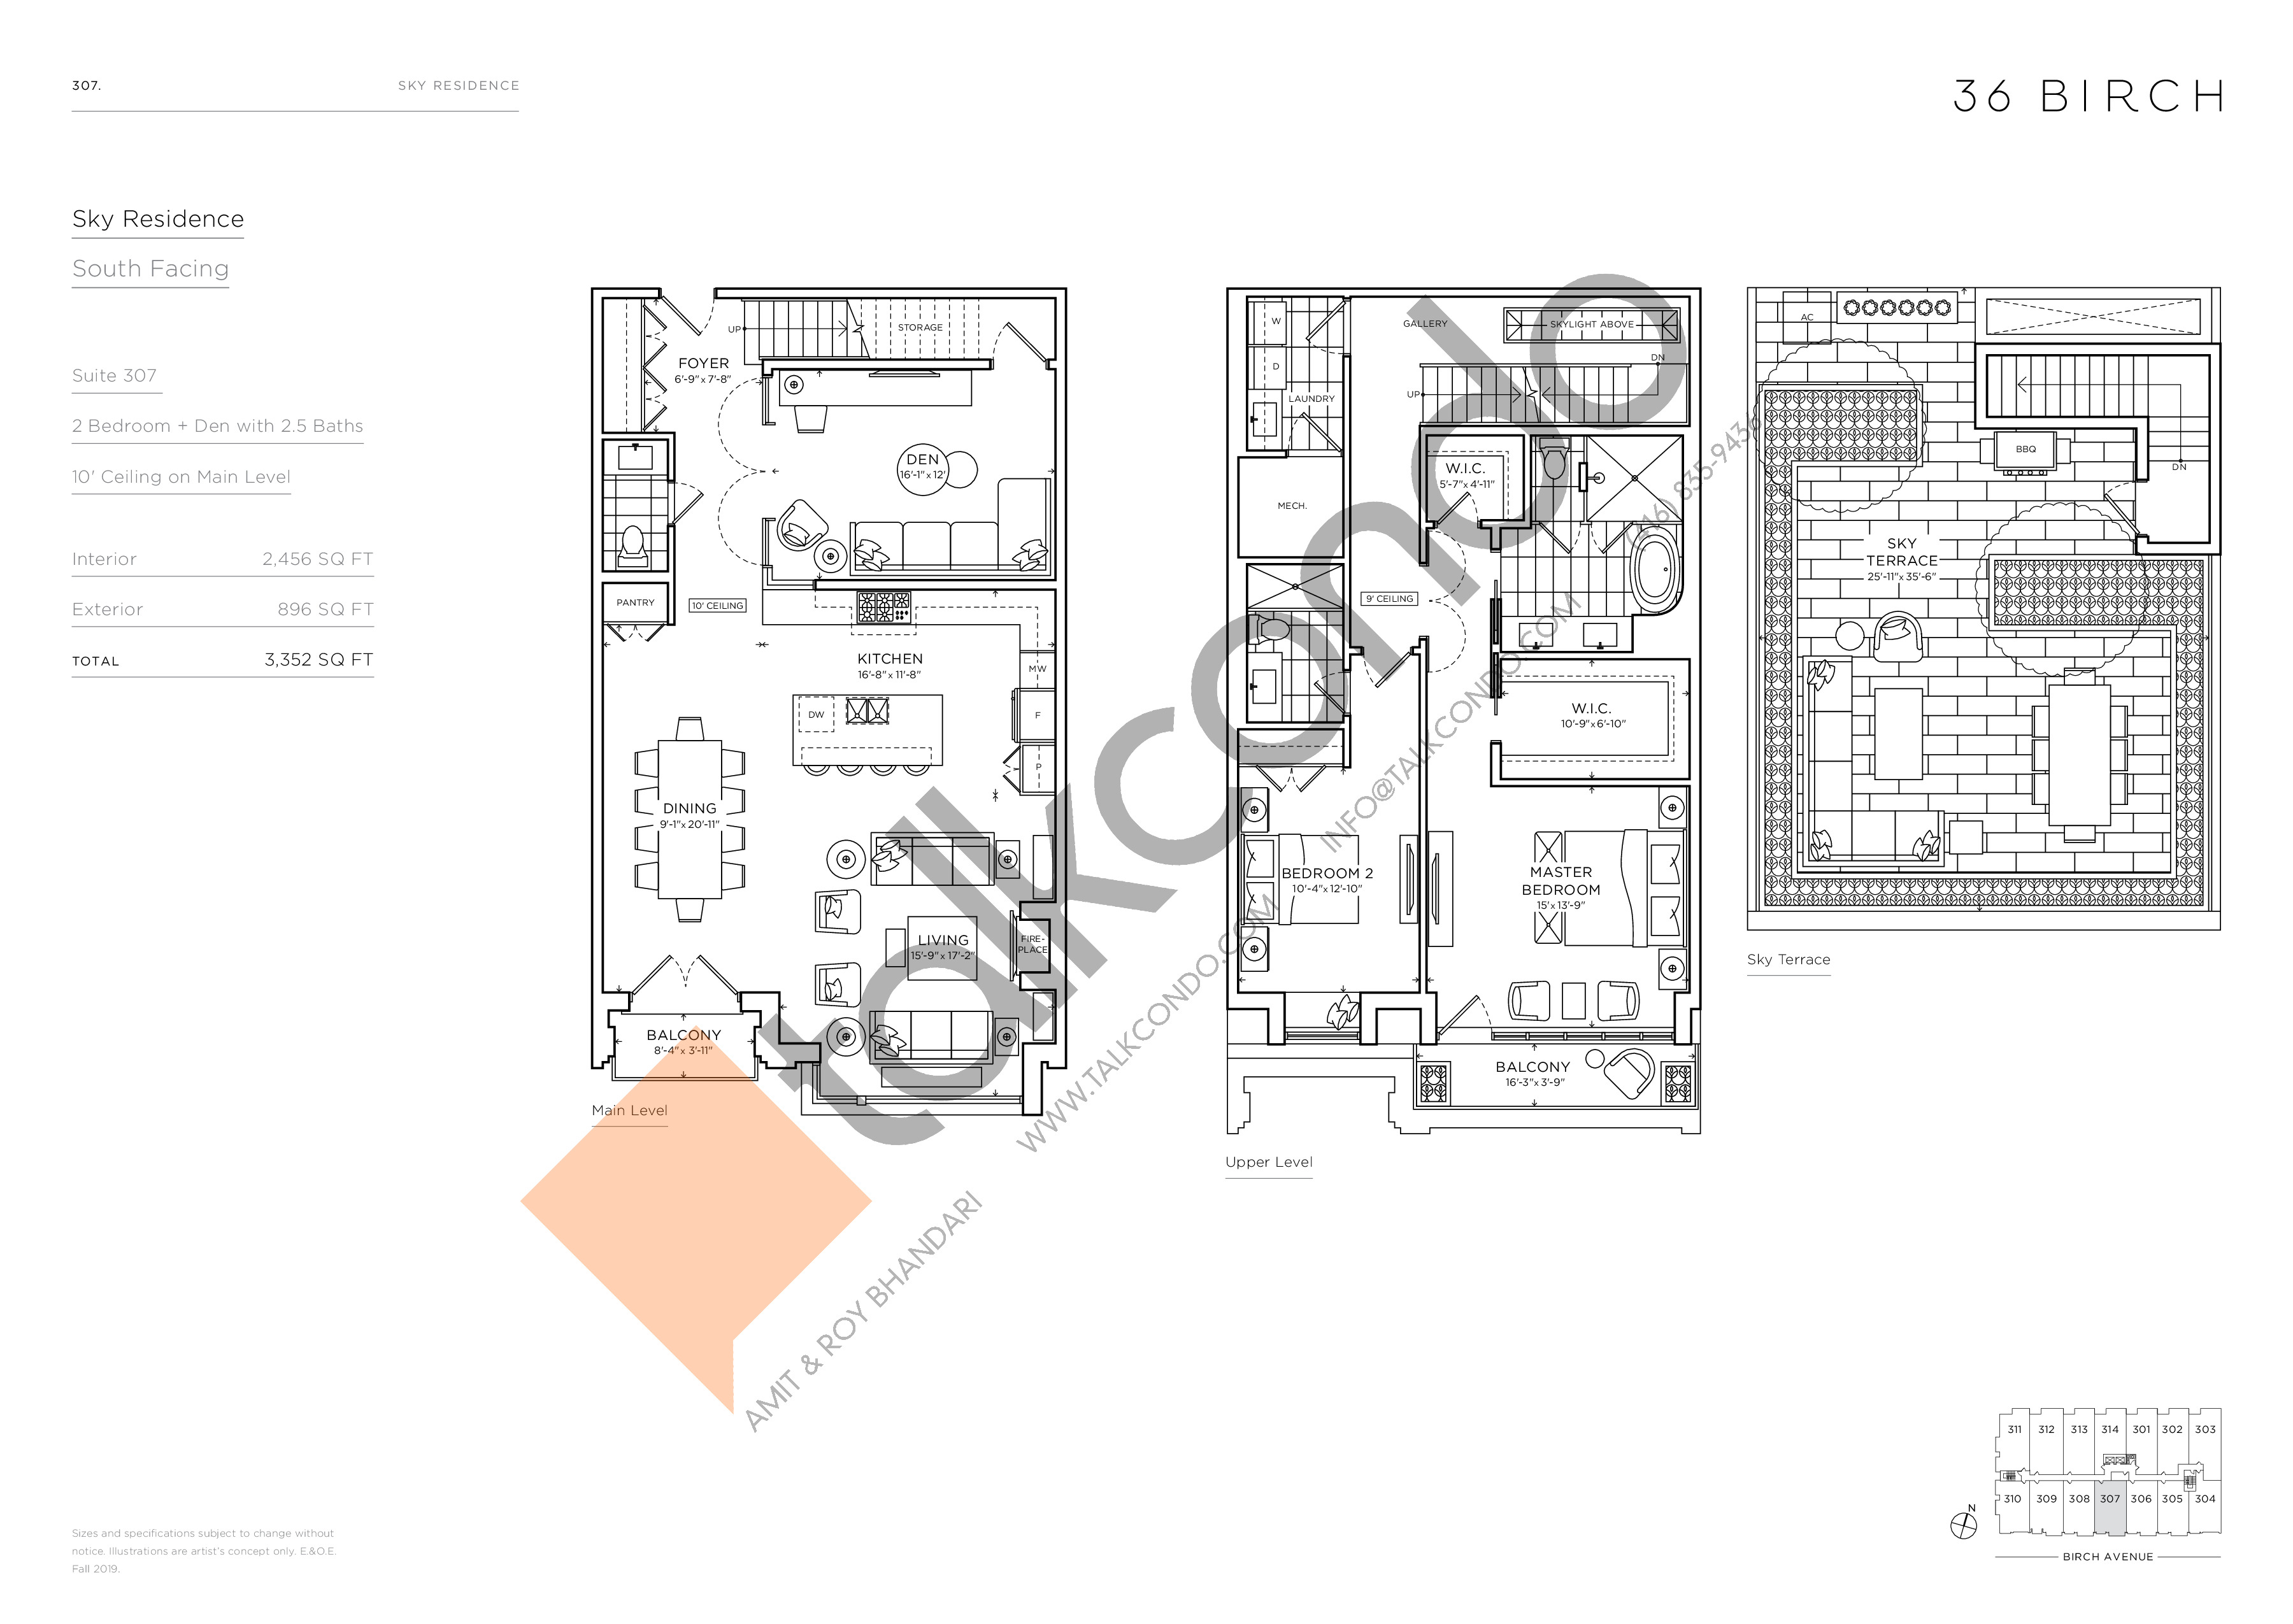 307 - Sky Residence Floor Plan at 36 Birch Avenue Condos - 2456 sq.ft